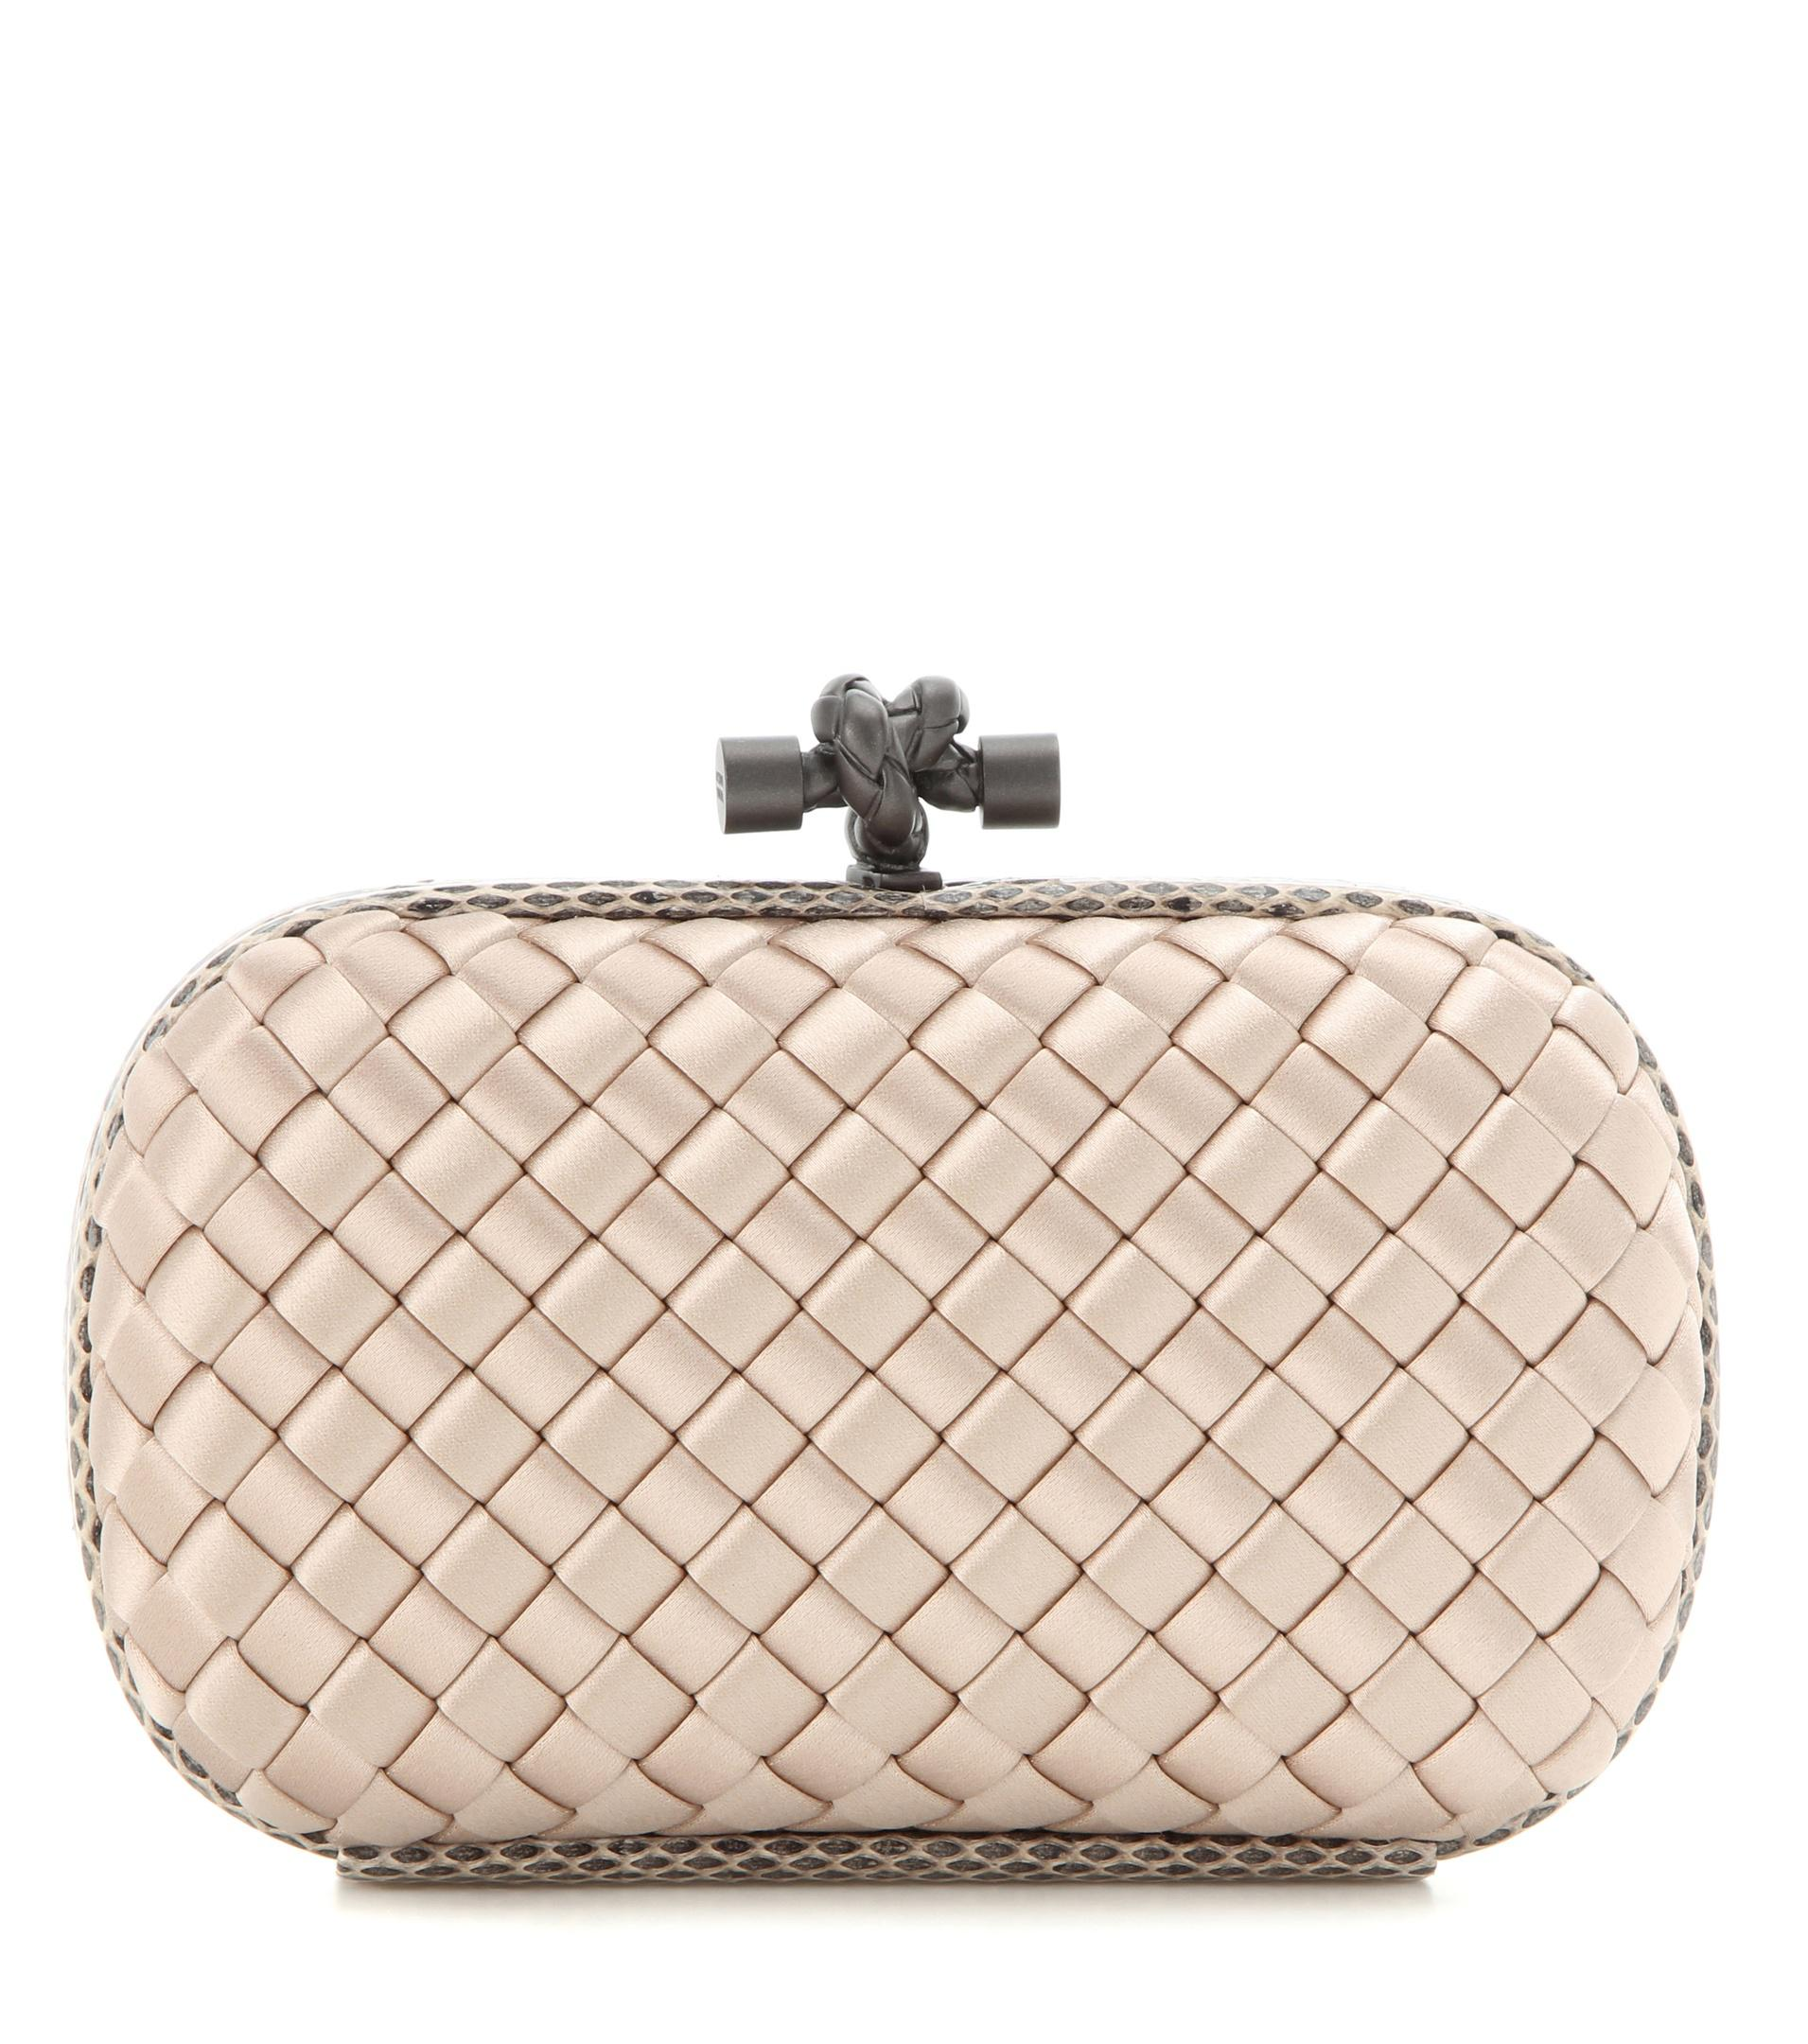 4968db9e2d56 Bottega Veneta Knot Satin And Snakeskin Clutch in Natural - Lyst